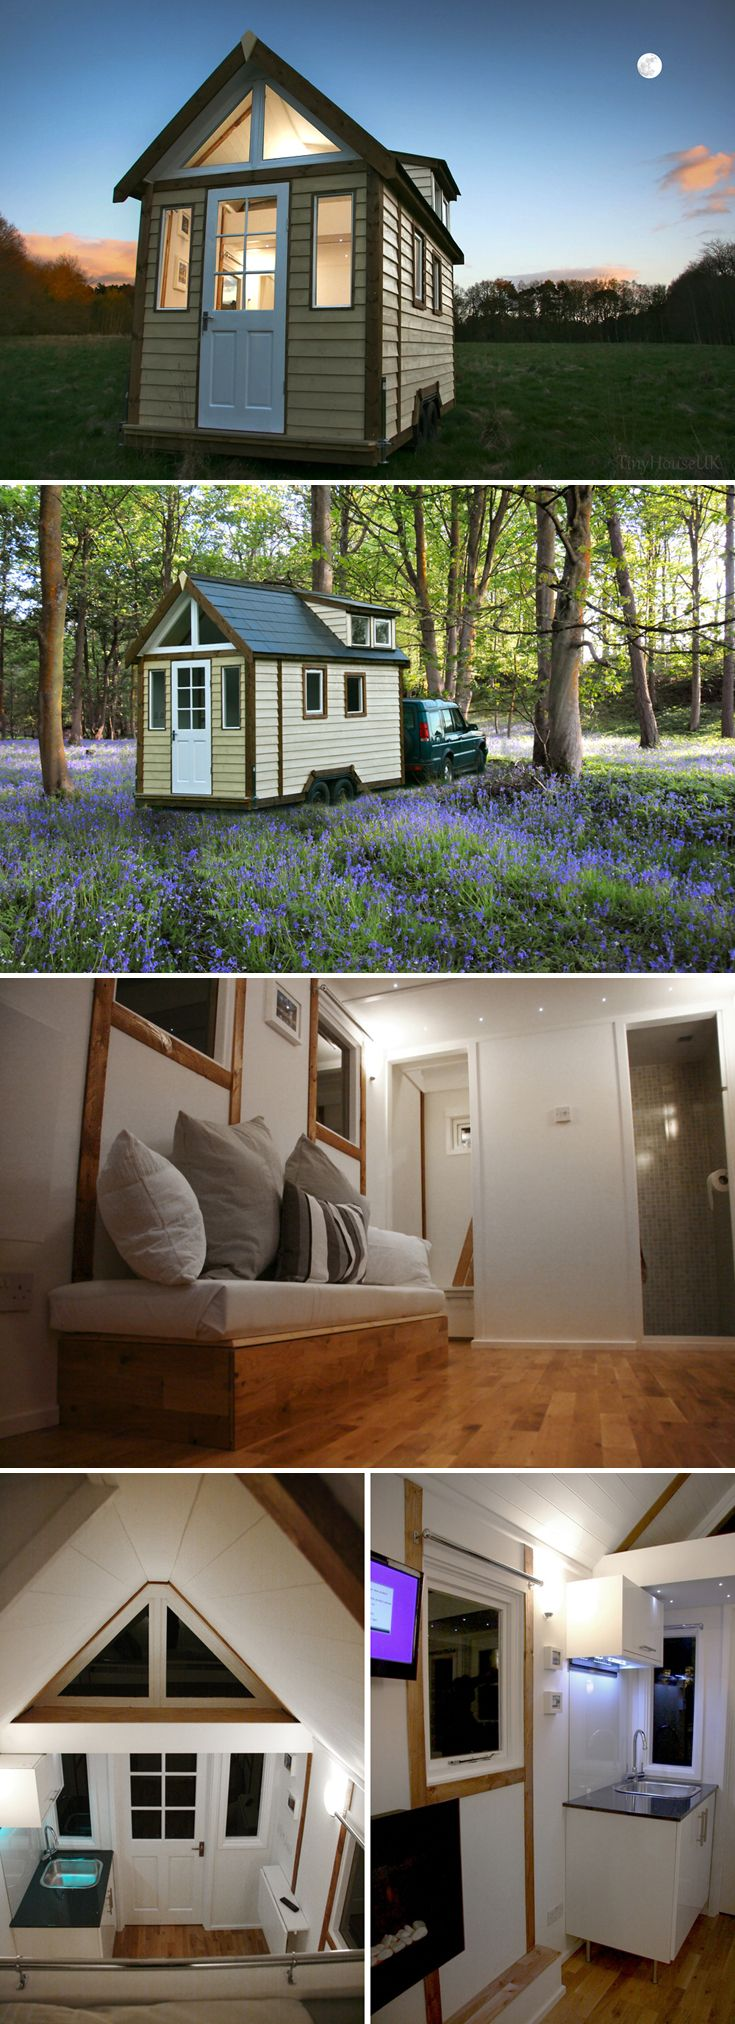 Converting sheds into livable space miniature homes and spaces - Best 25 Tiny House Show Ideas On Pinterest Mini Homes Projection Screen Tv And Tiny Movie